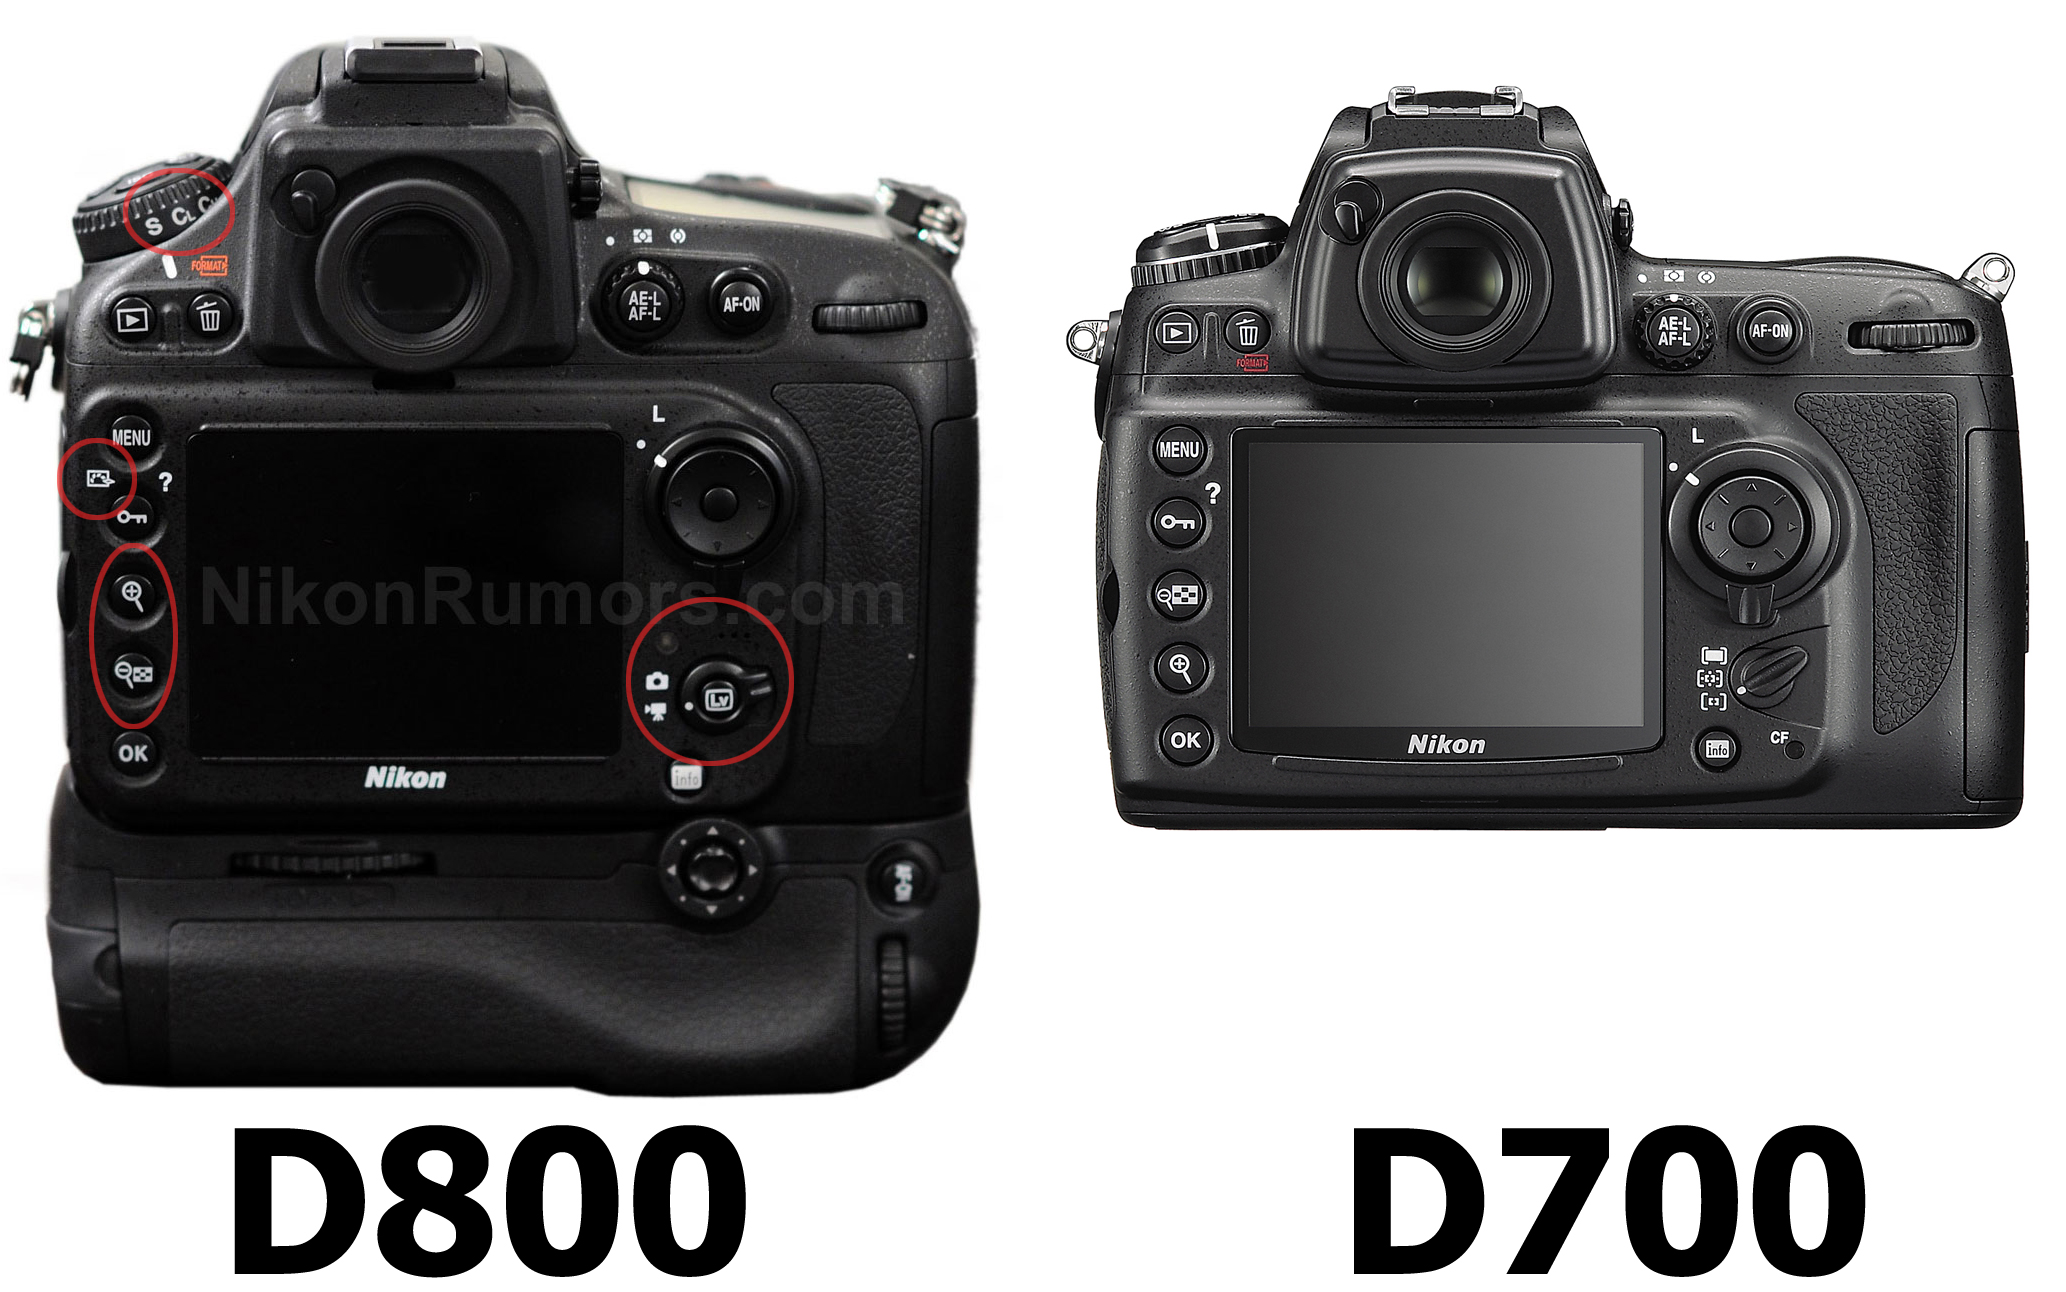 Nikon D800: The mystery of 36